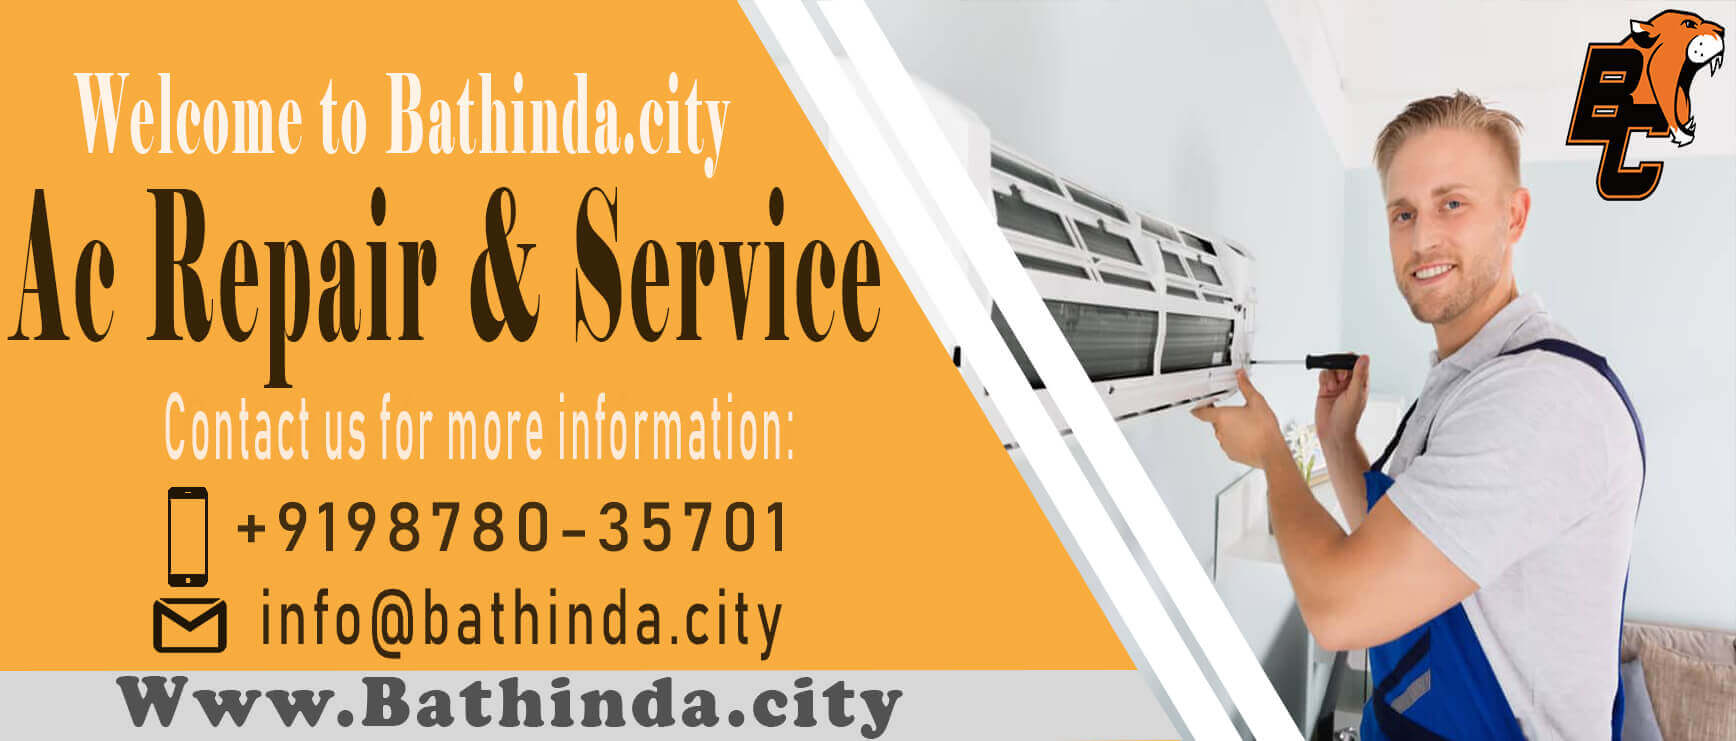 Ac repair Service in Bathinda